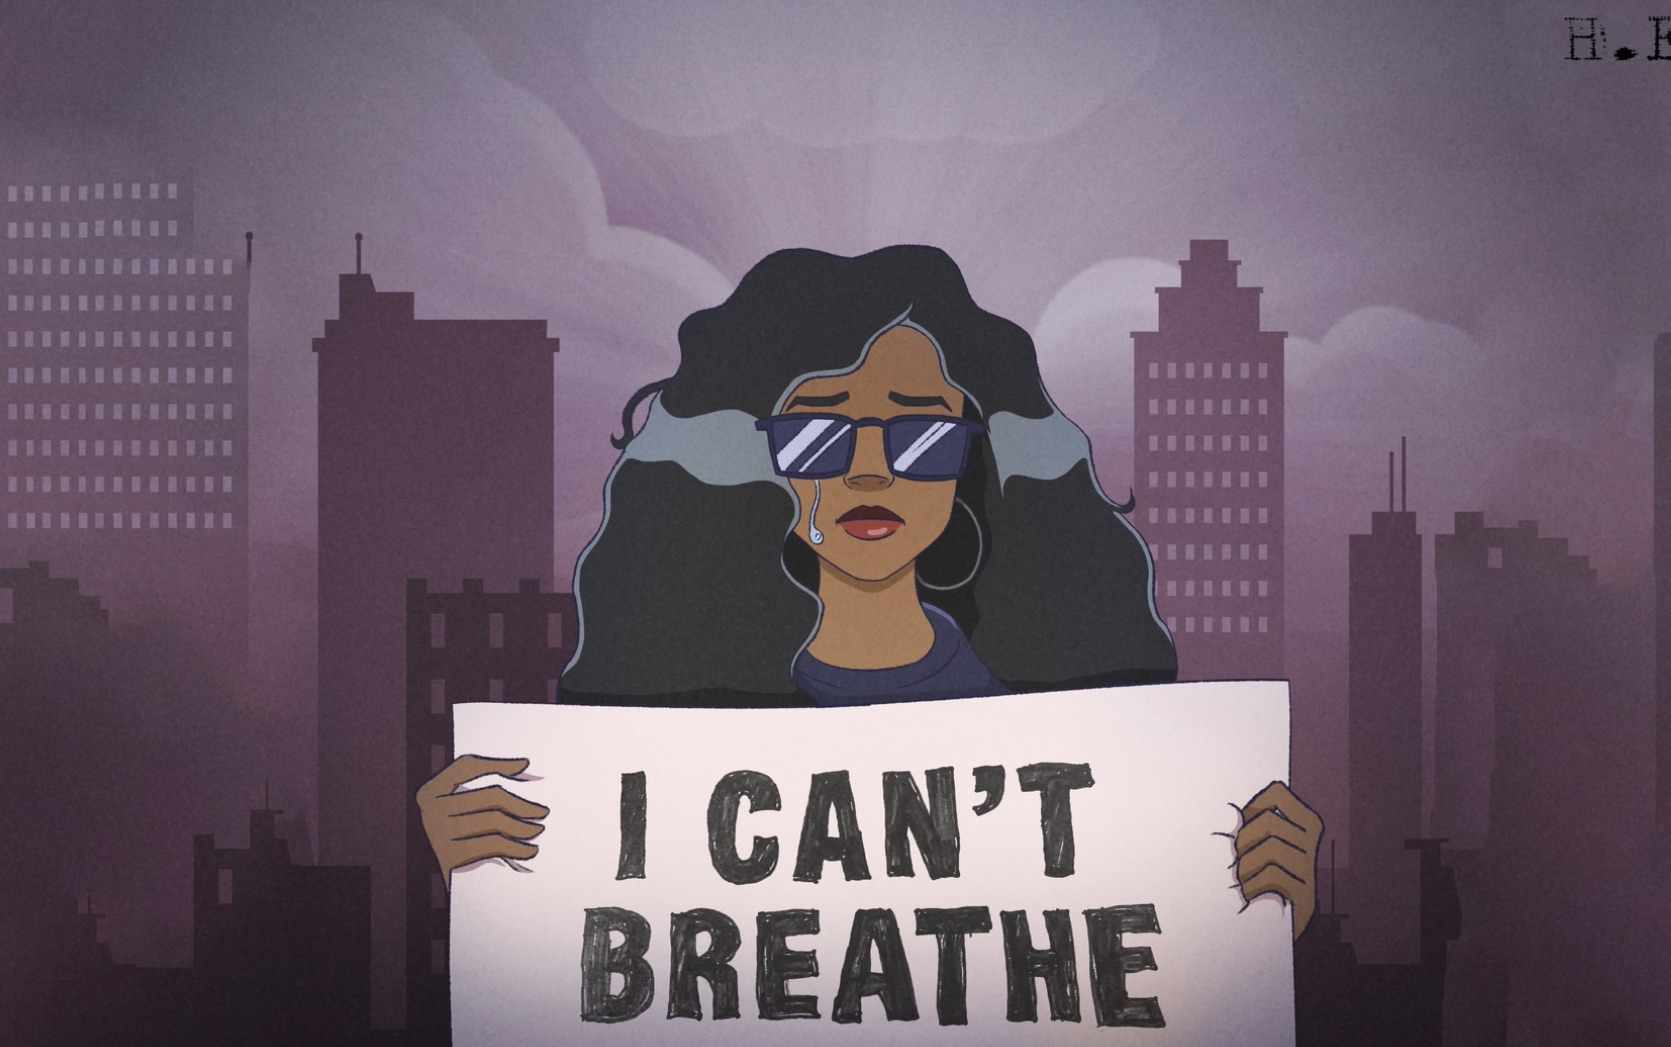 H.E.R. - I Can't Breathe